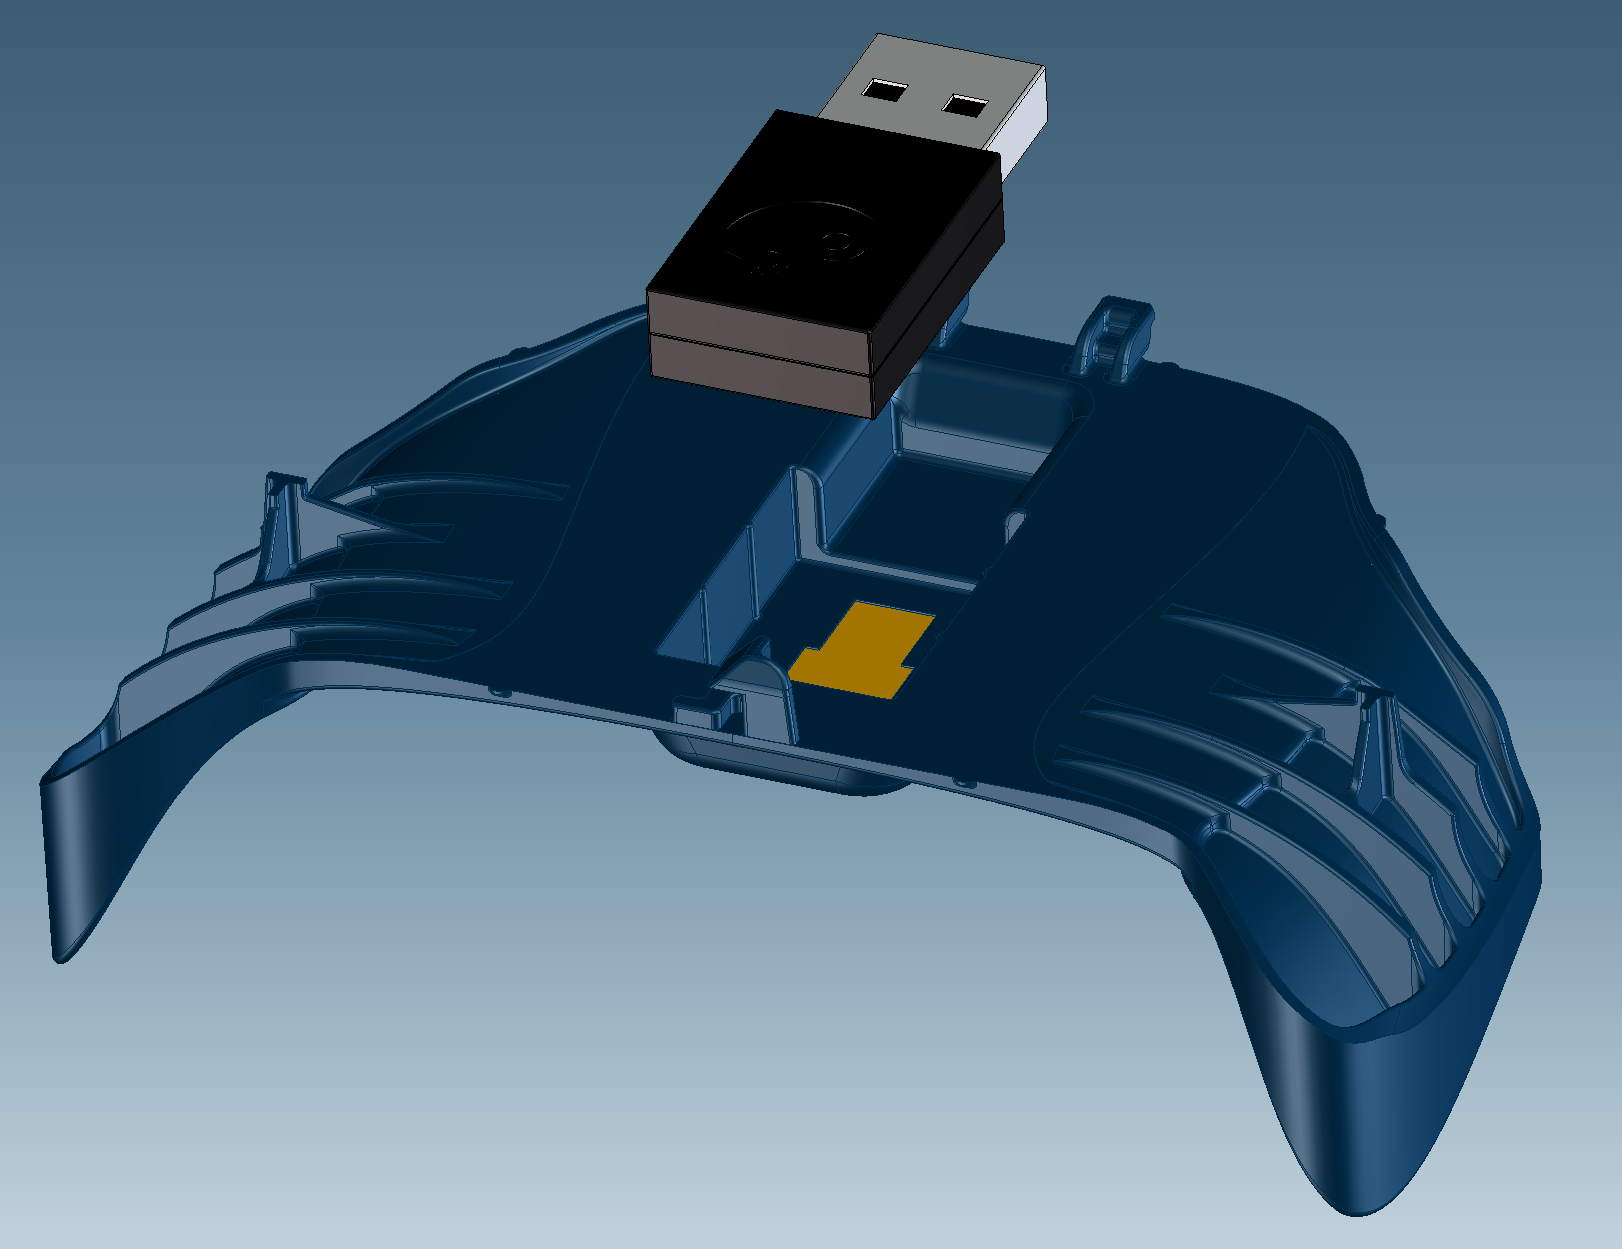 Make your own accessories for the Steam controller